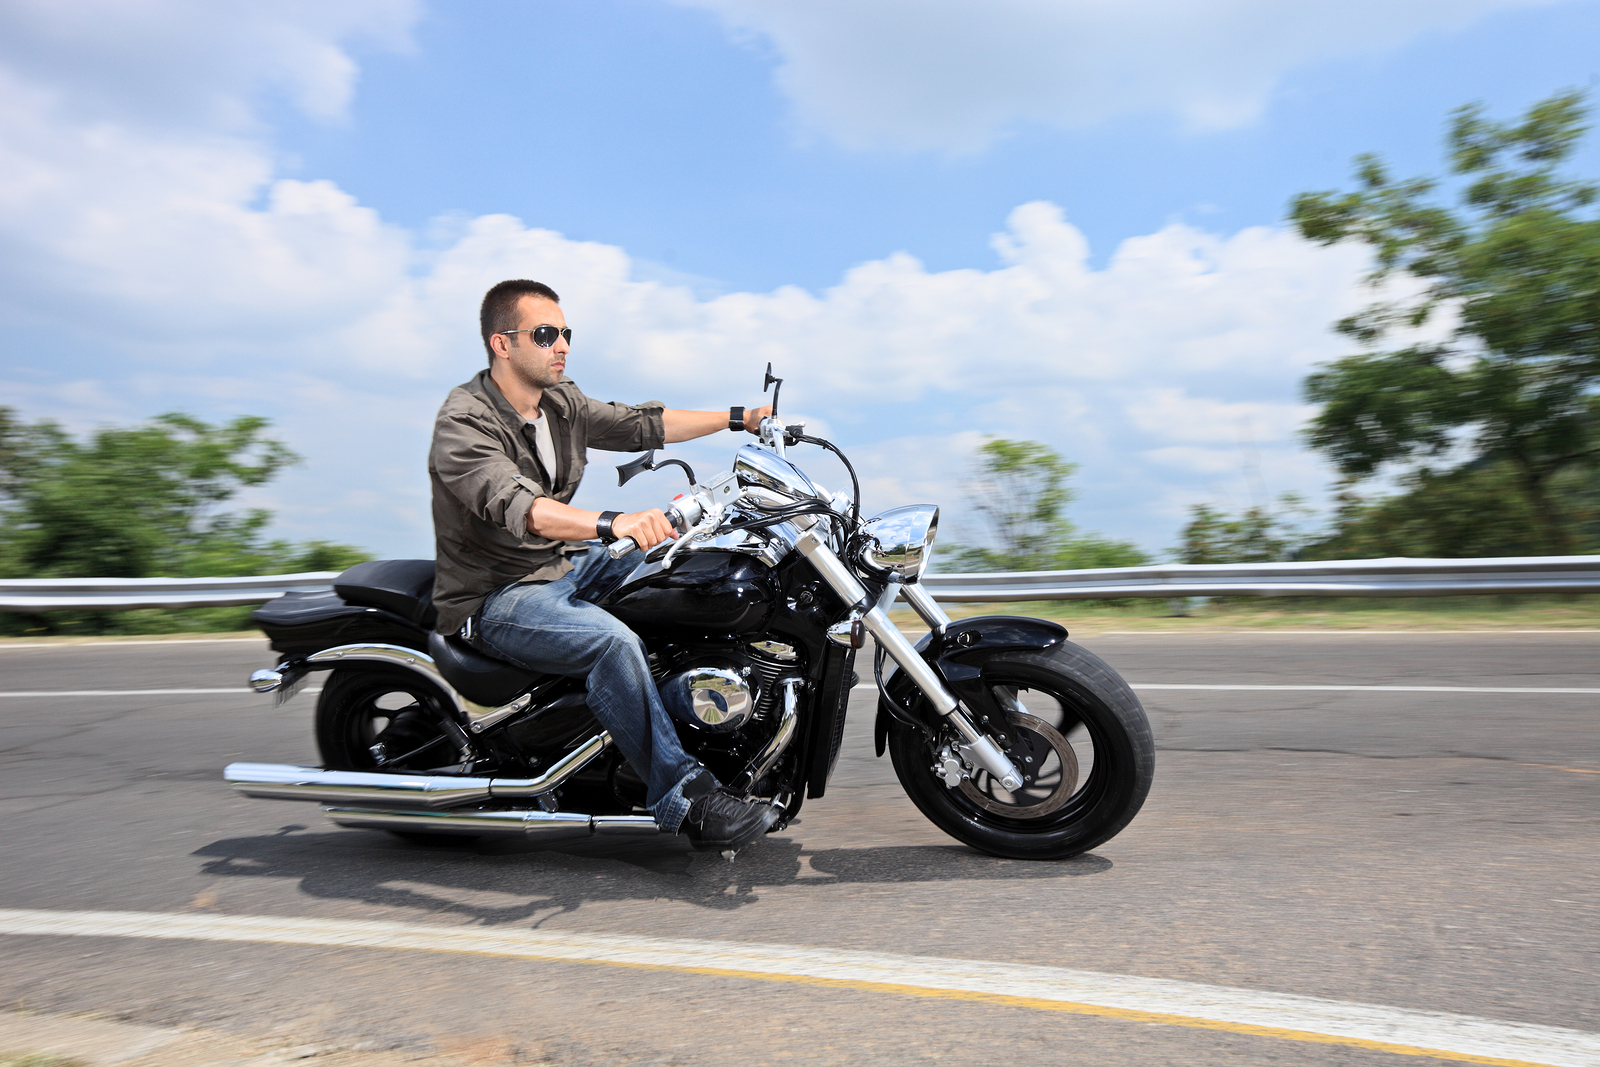 Common Injuries Caused By Motorcycle Accidents Ernst Law